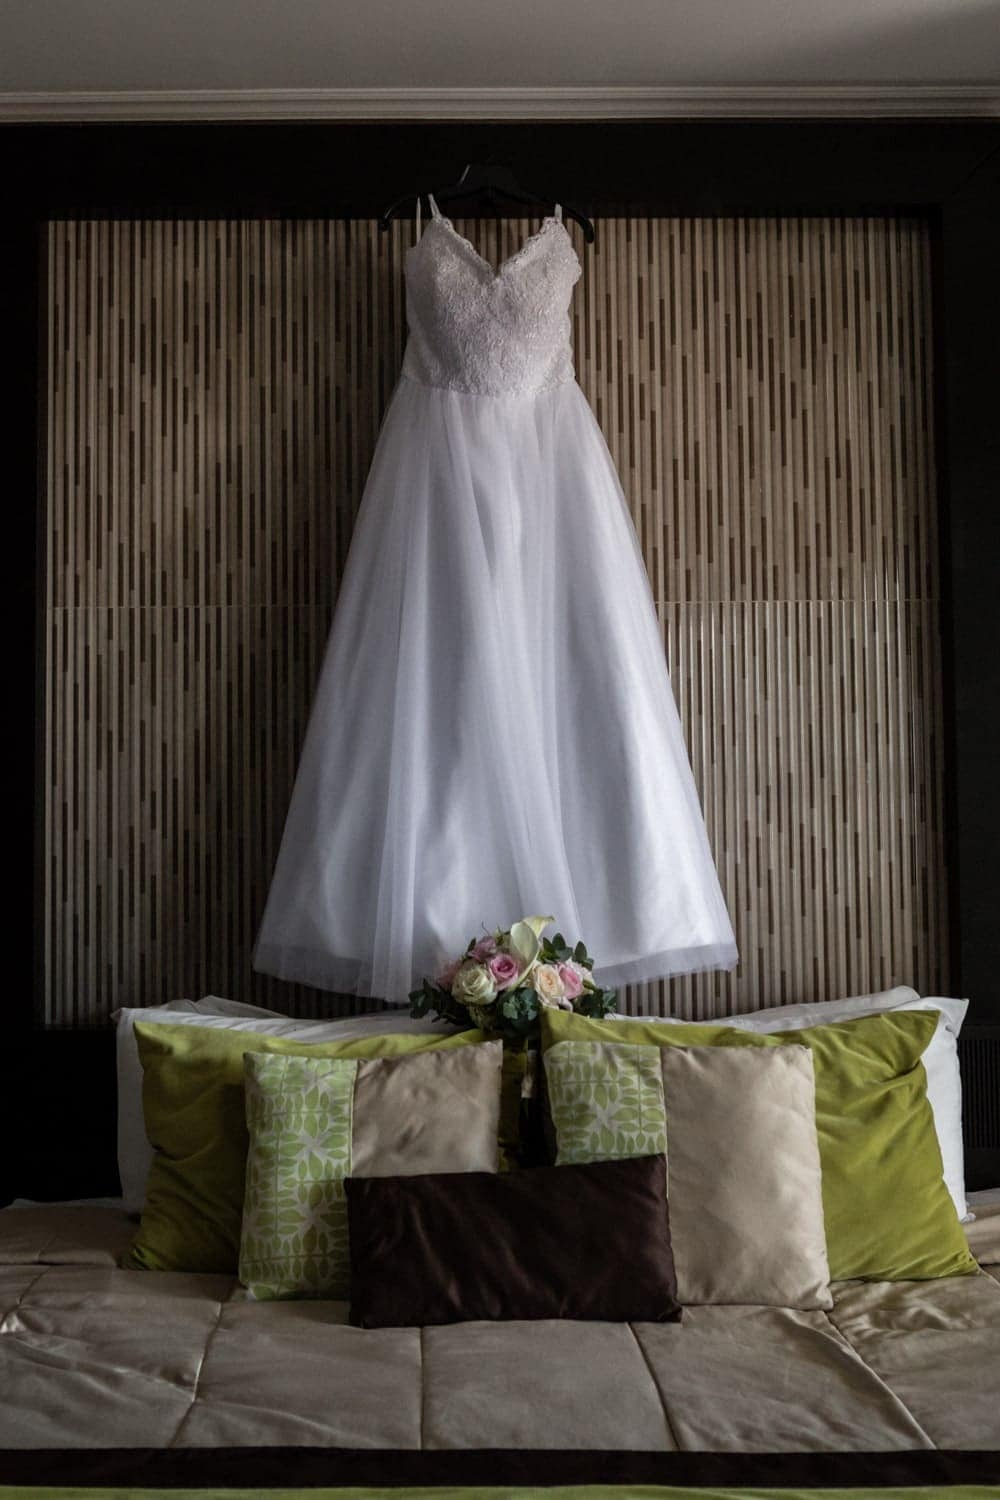 Wedding dress hanging from headboard made of bamboo in bridal suite.